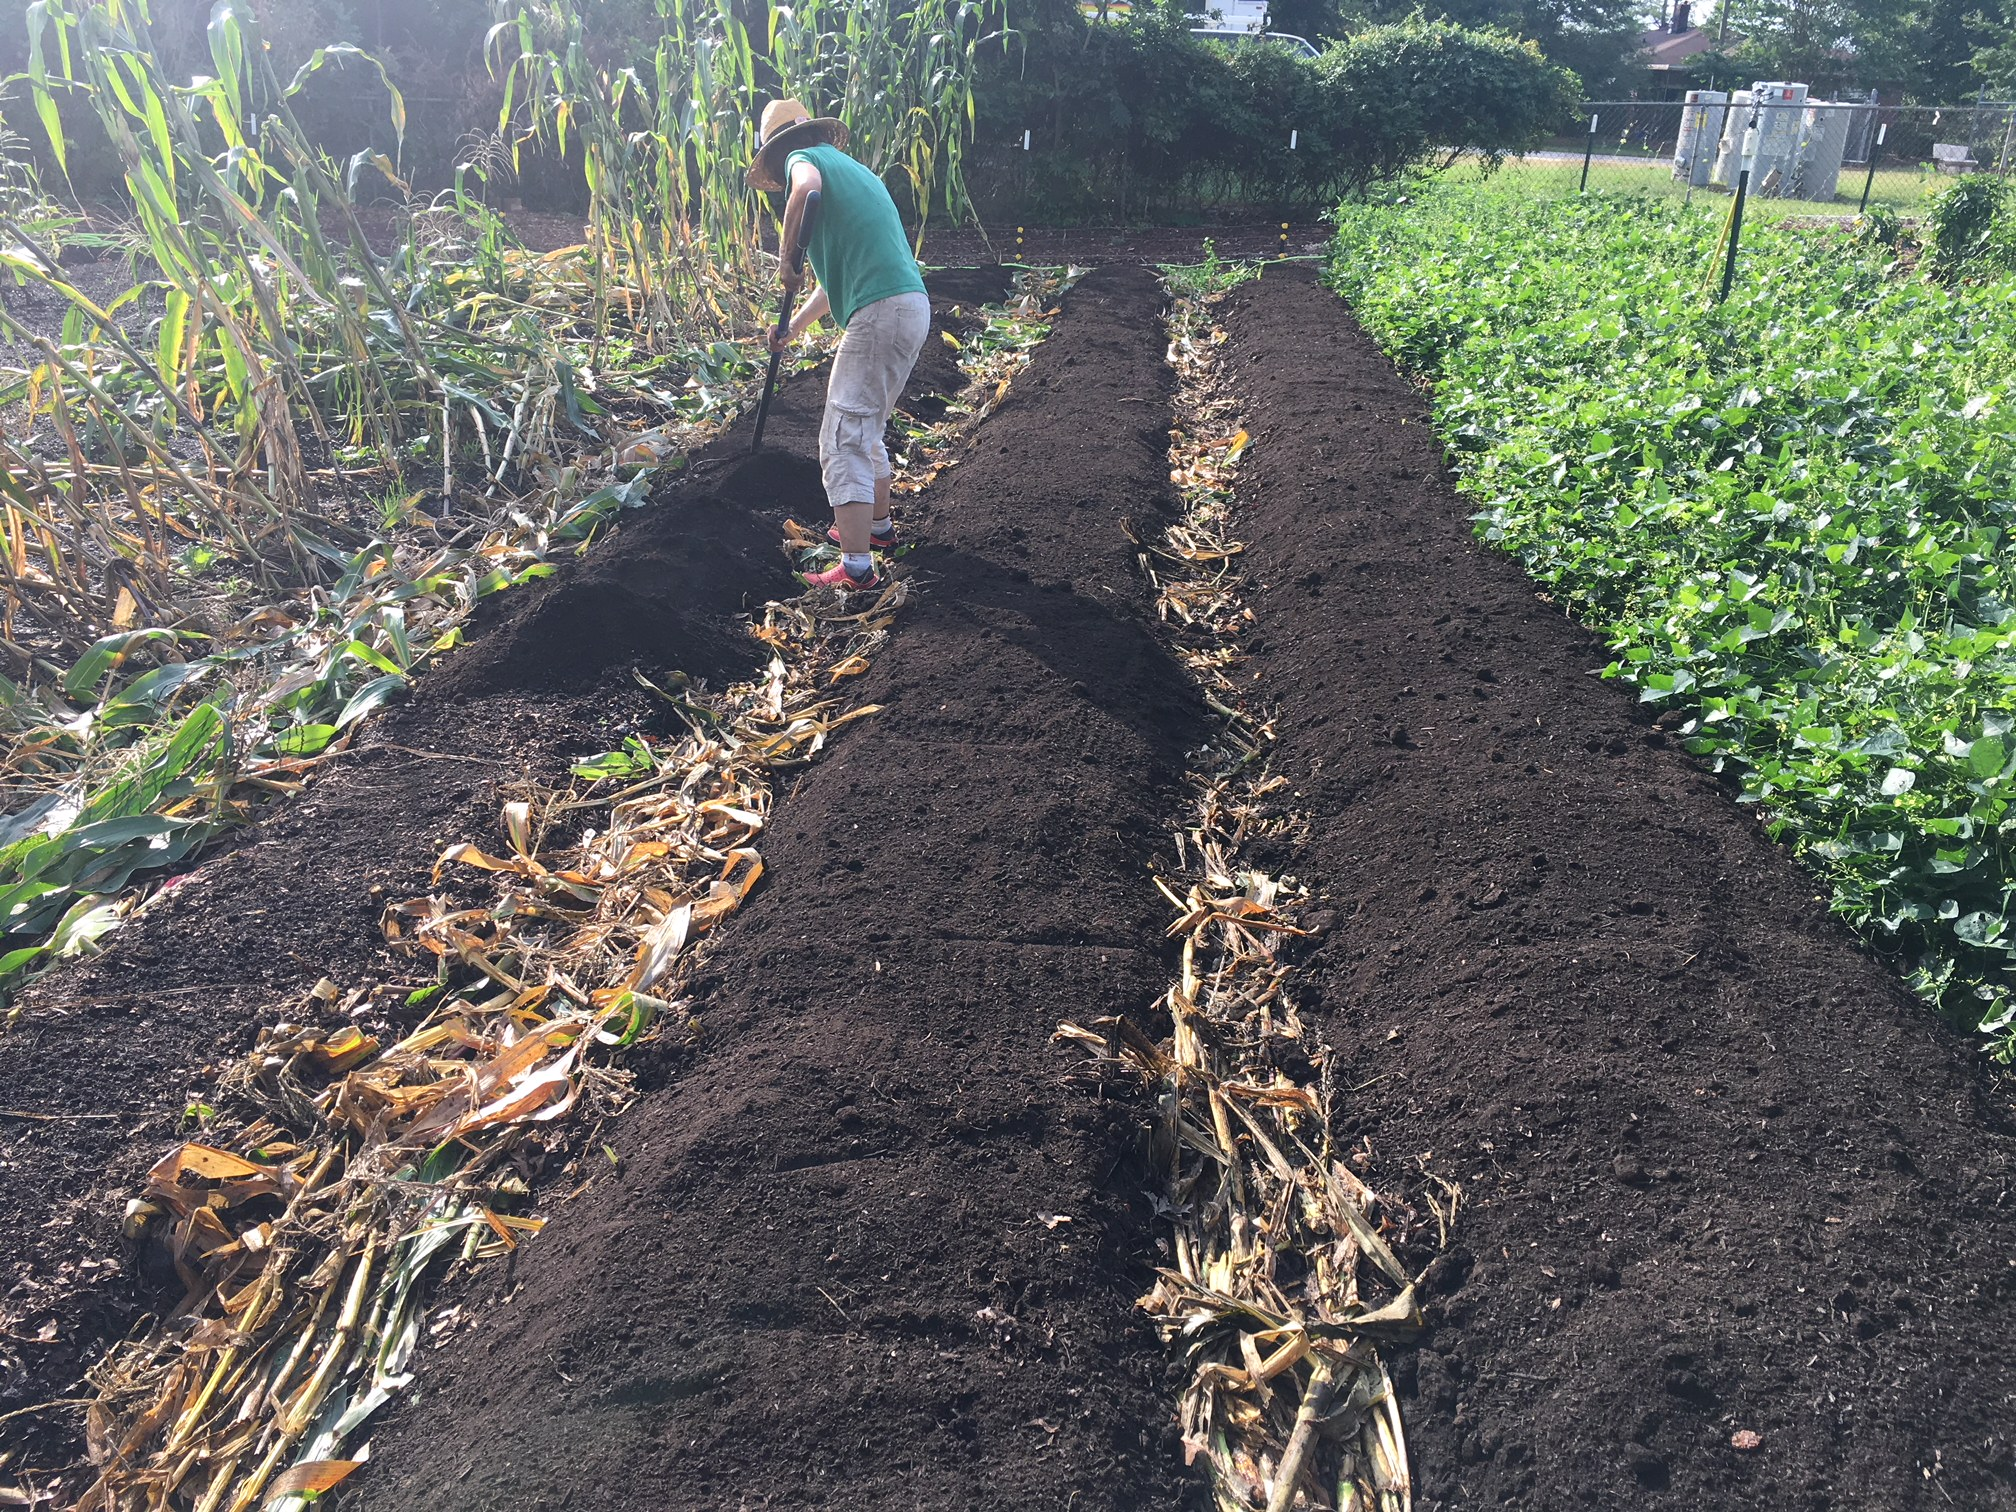 Raking out the compost to a depth of 2-3